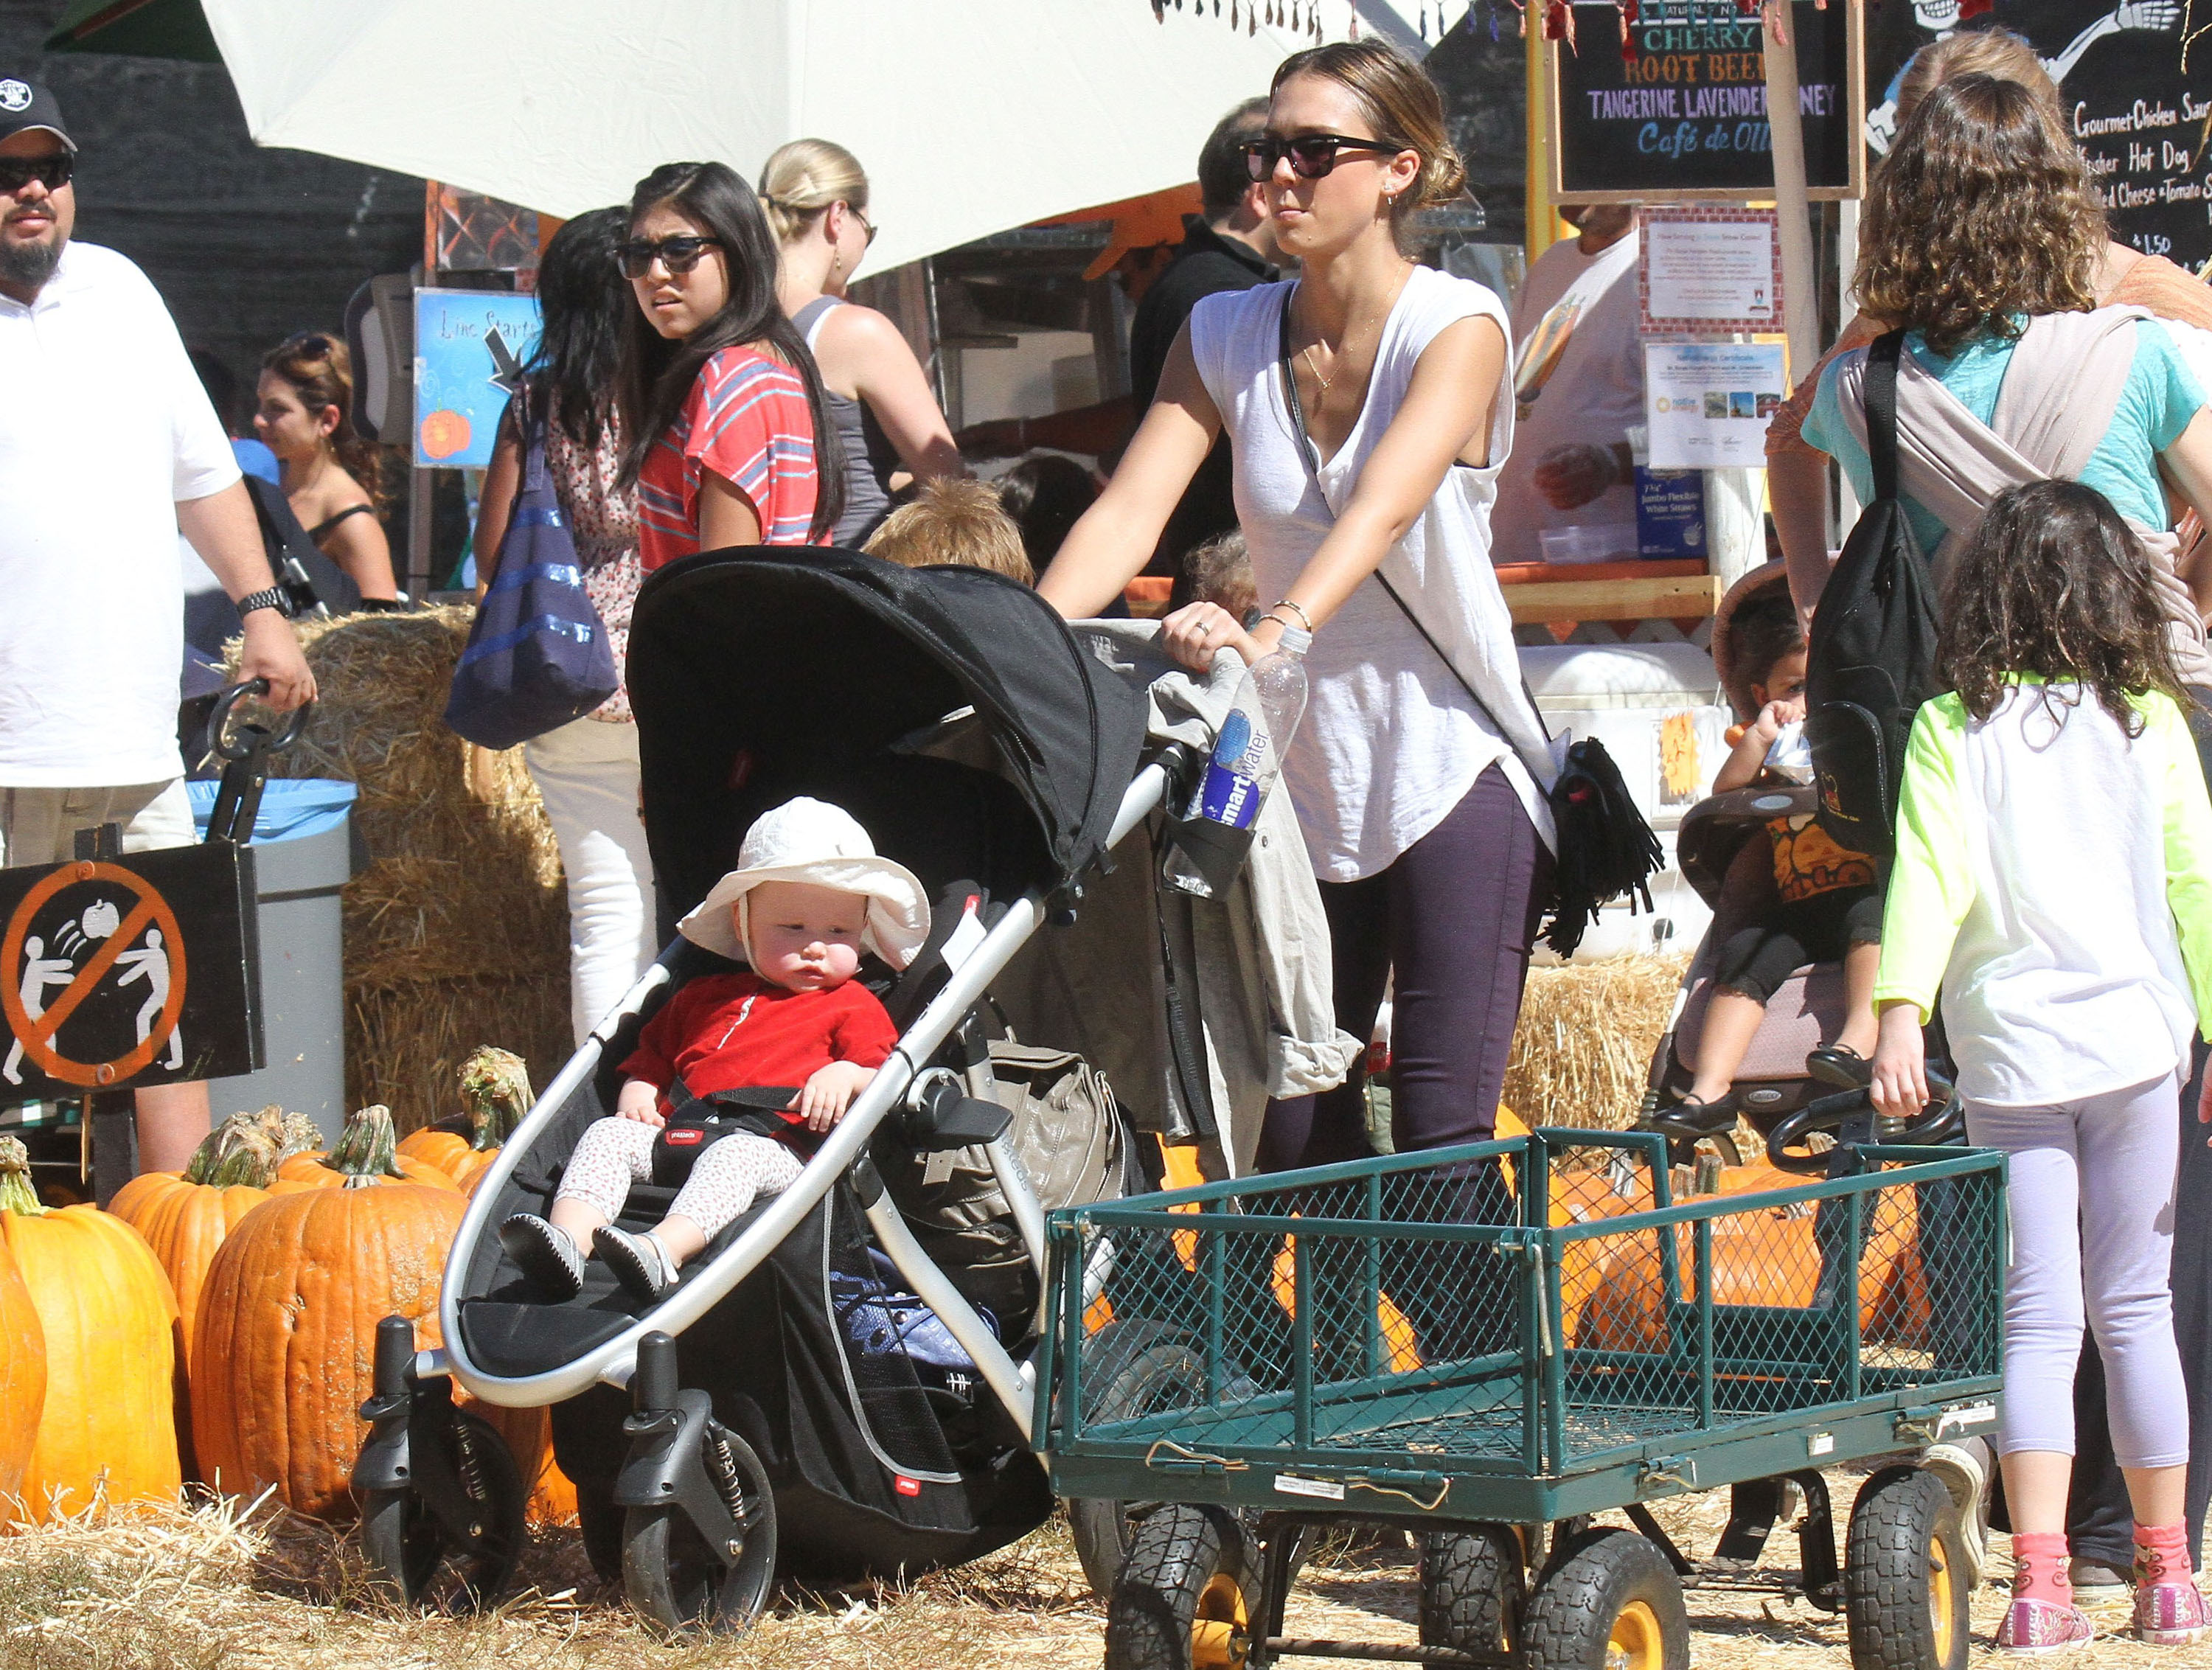 At Mr. Bones Pumpkin Patch in LA, Jessica Alba pushed baby Honor through the pumpkins in her stroller.